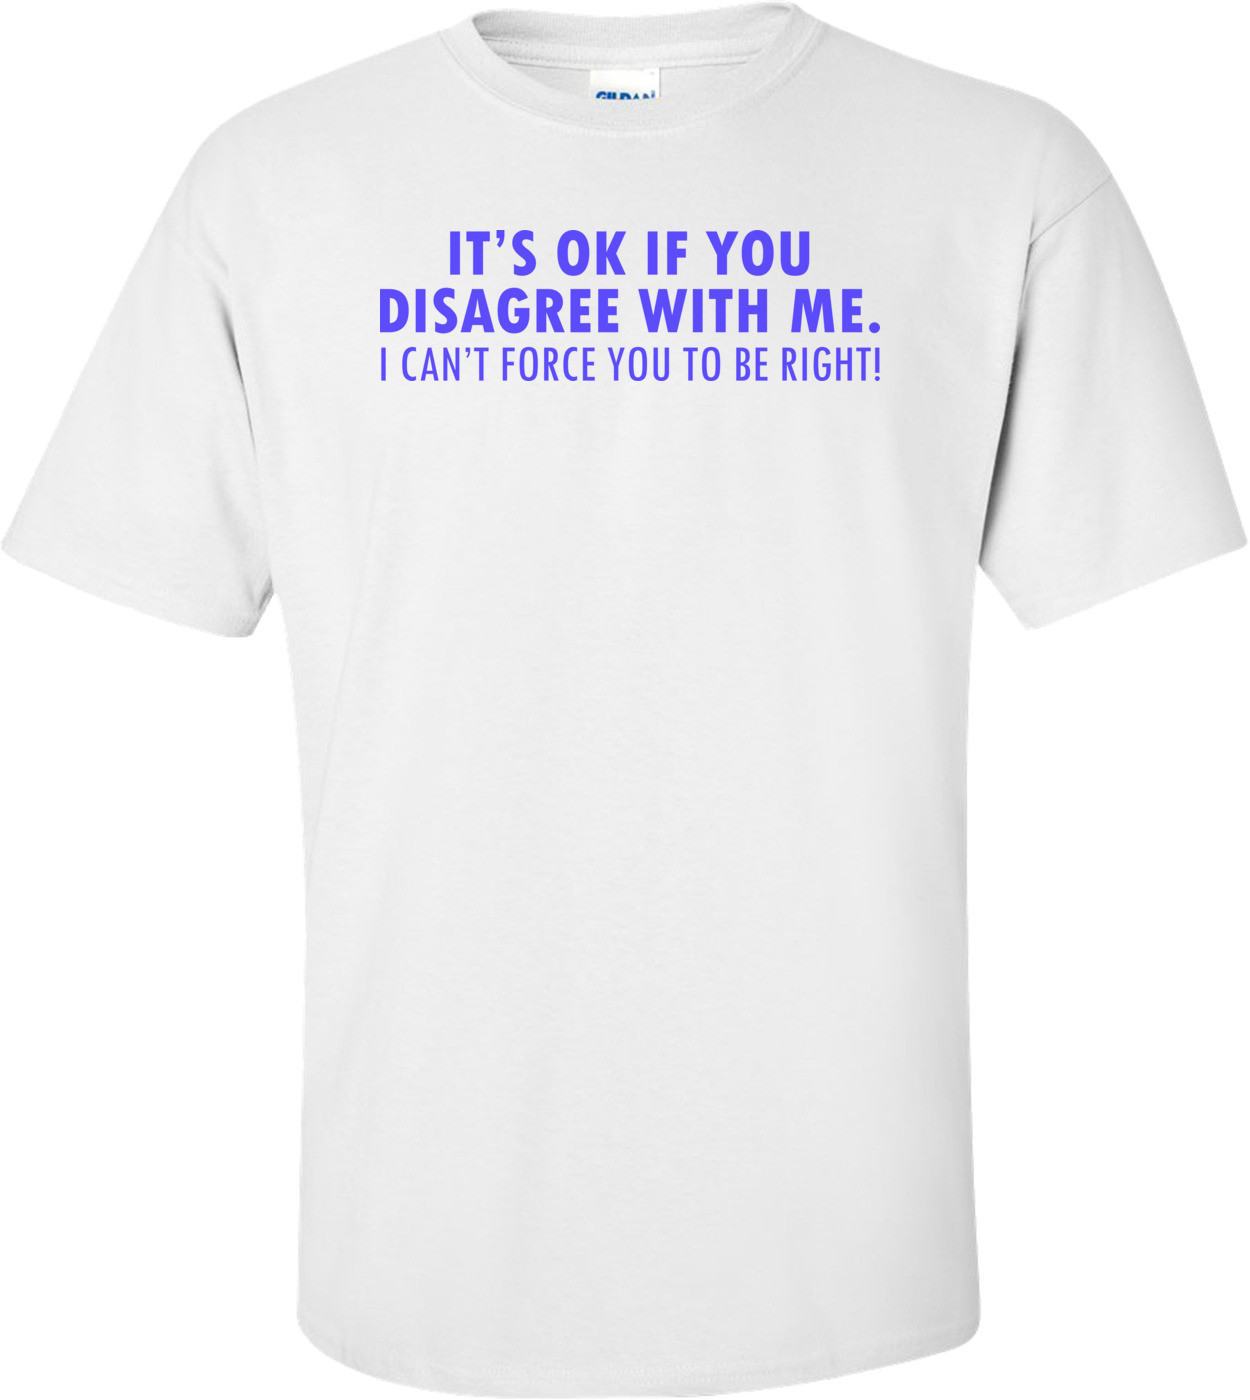 It's Ok If You Disagree With Me. I Can't Force You To Be Right! Funny Shirt